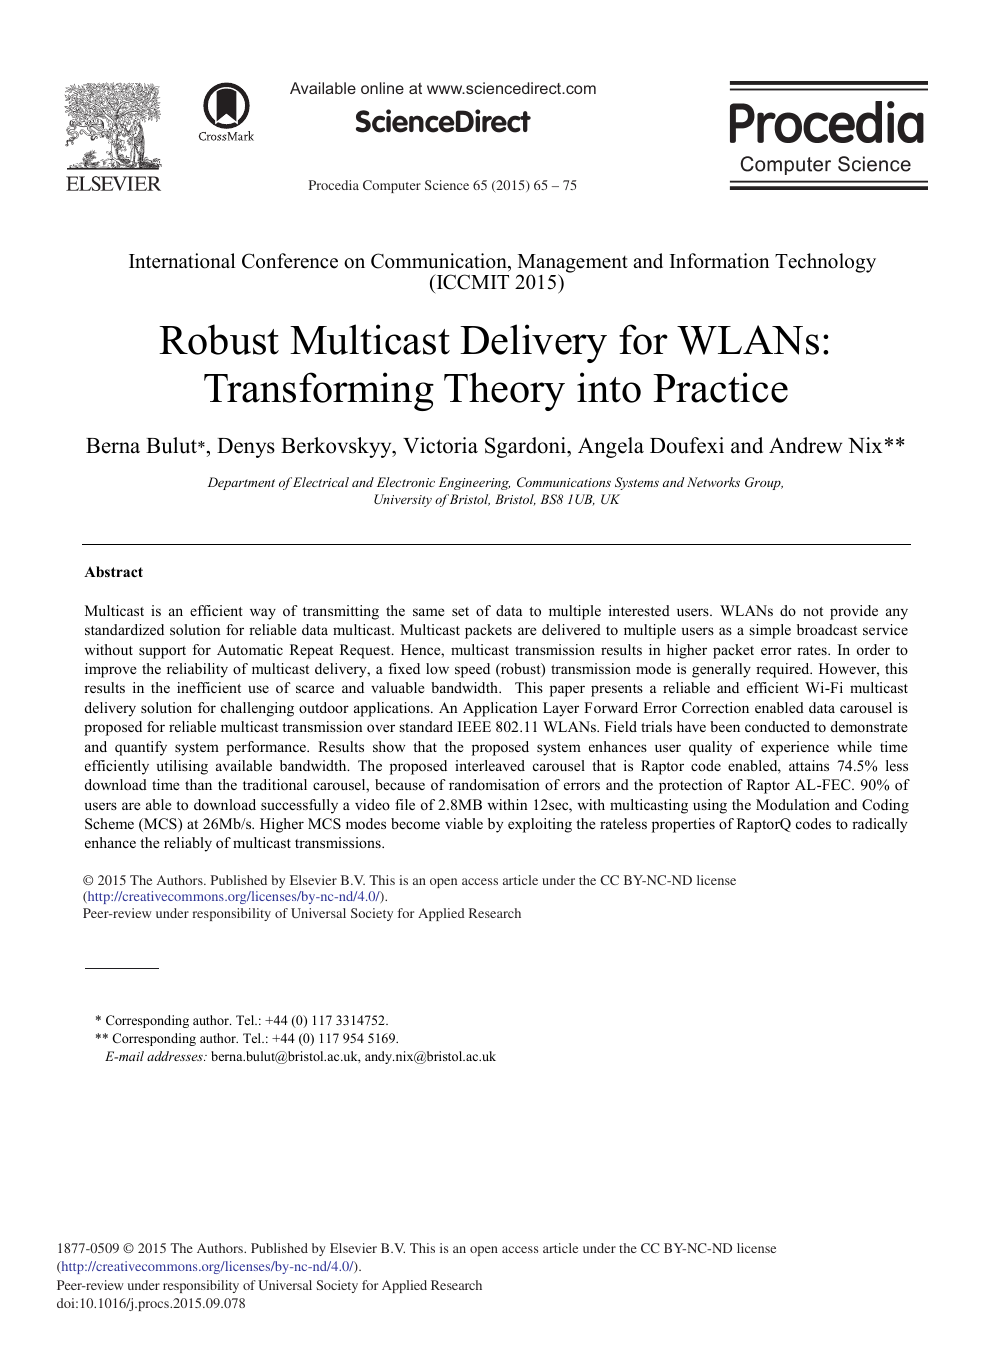 Robust Multicast Delivery for WLANs: Transforming Theory